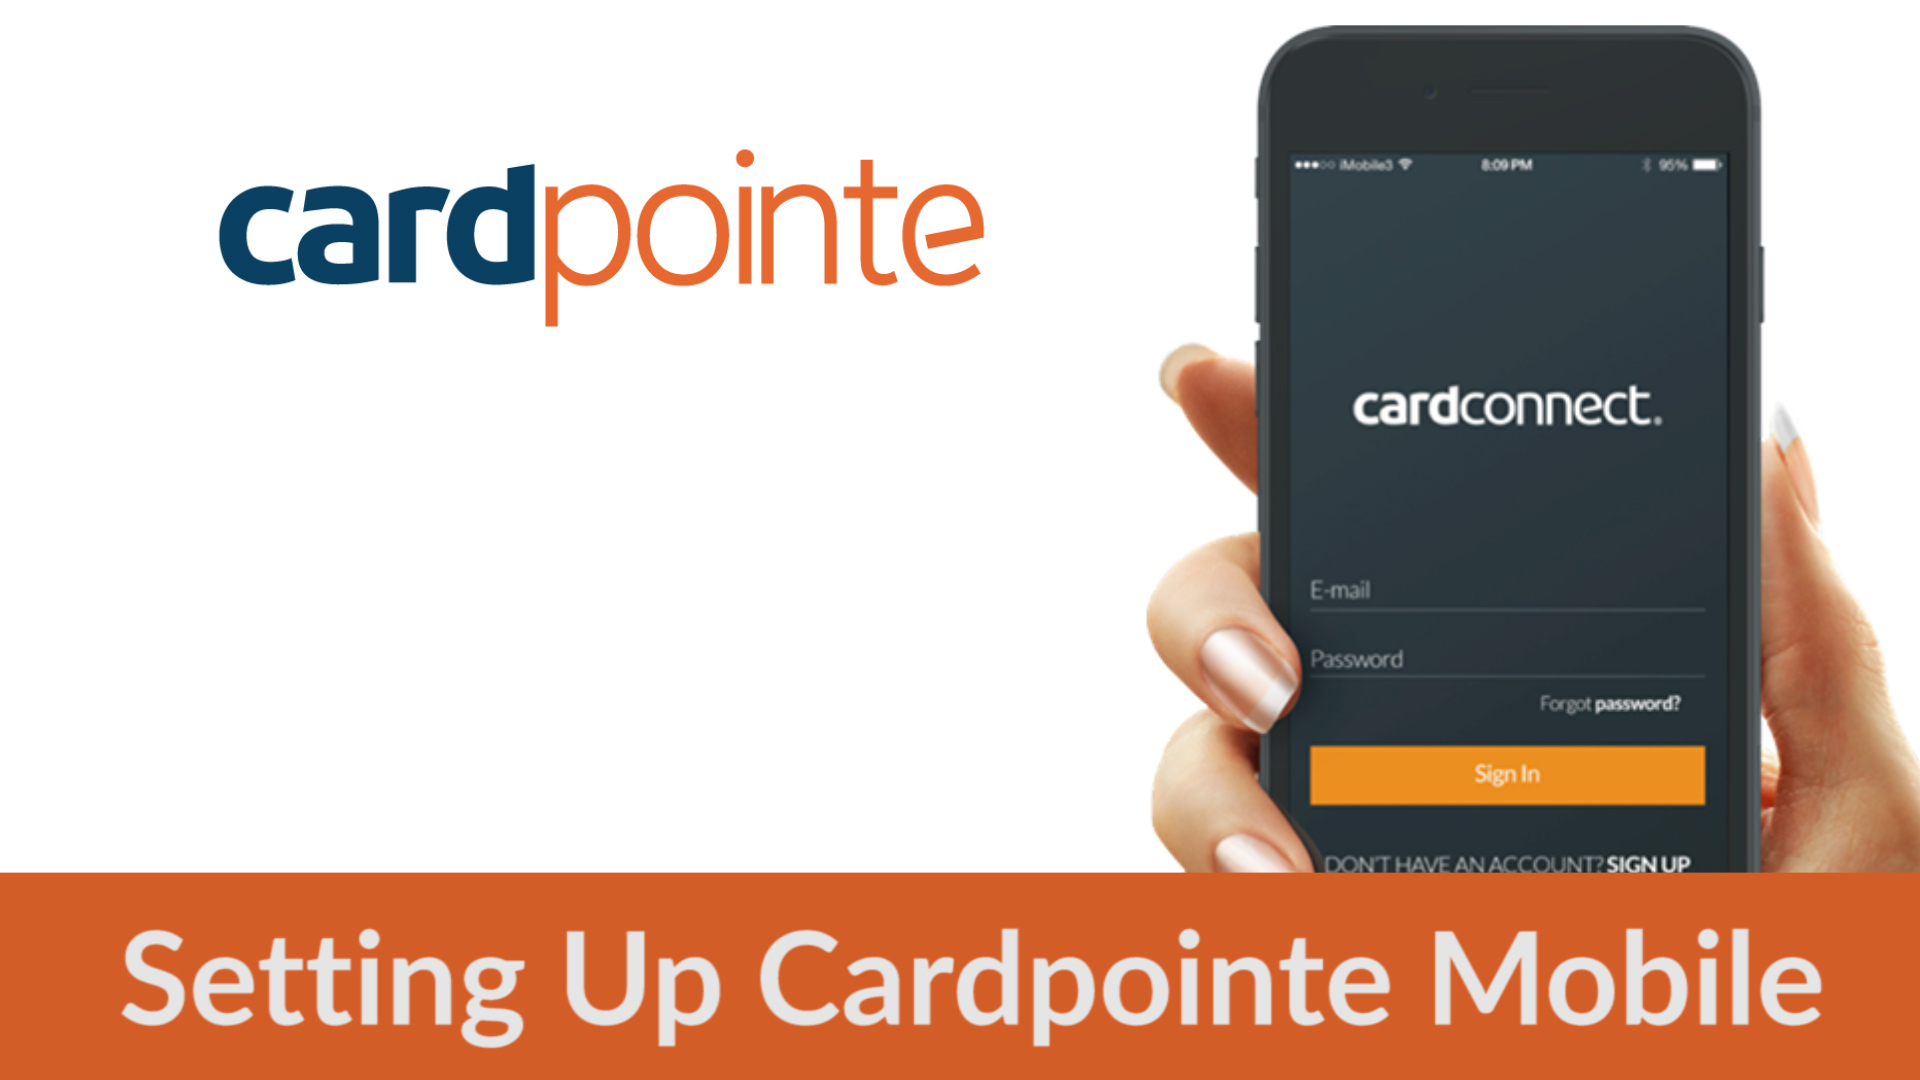 Setting Up Cardpointe Mobile